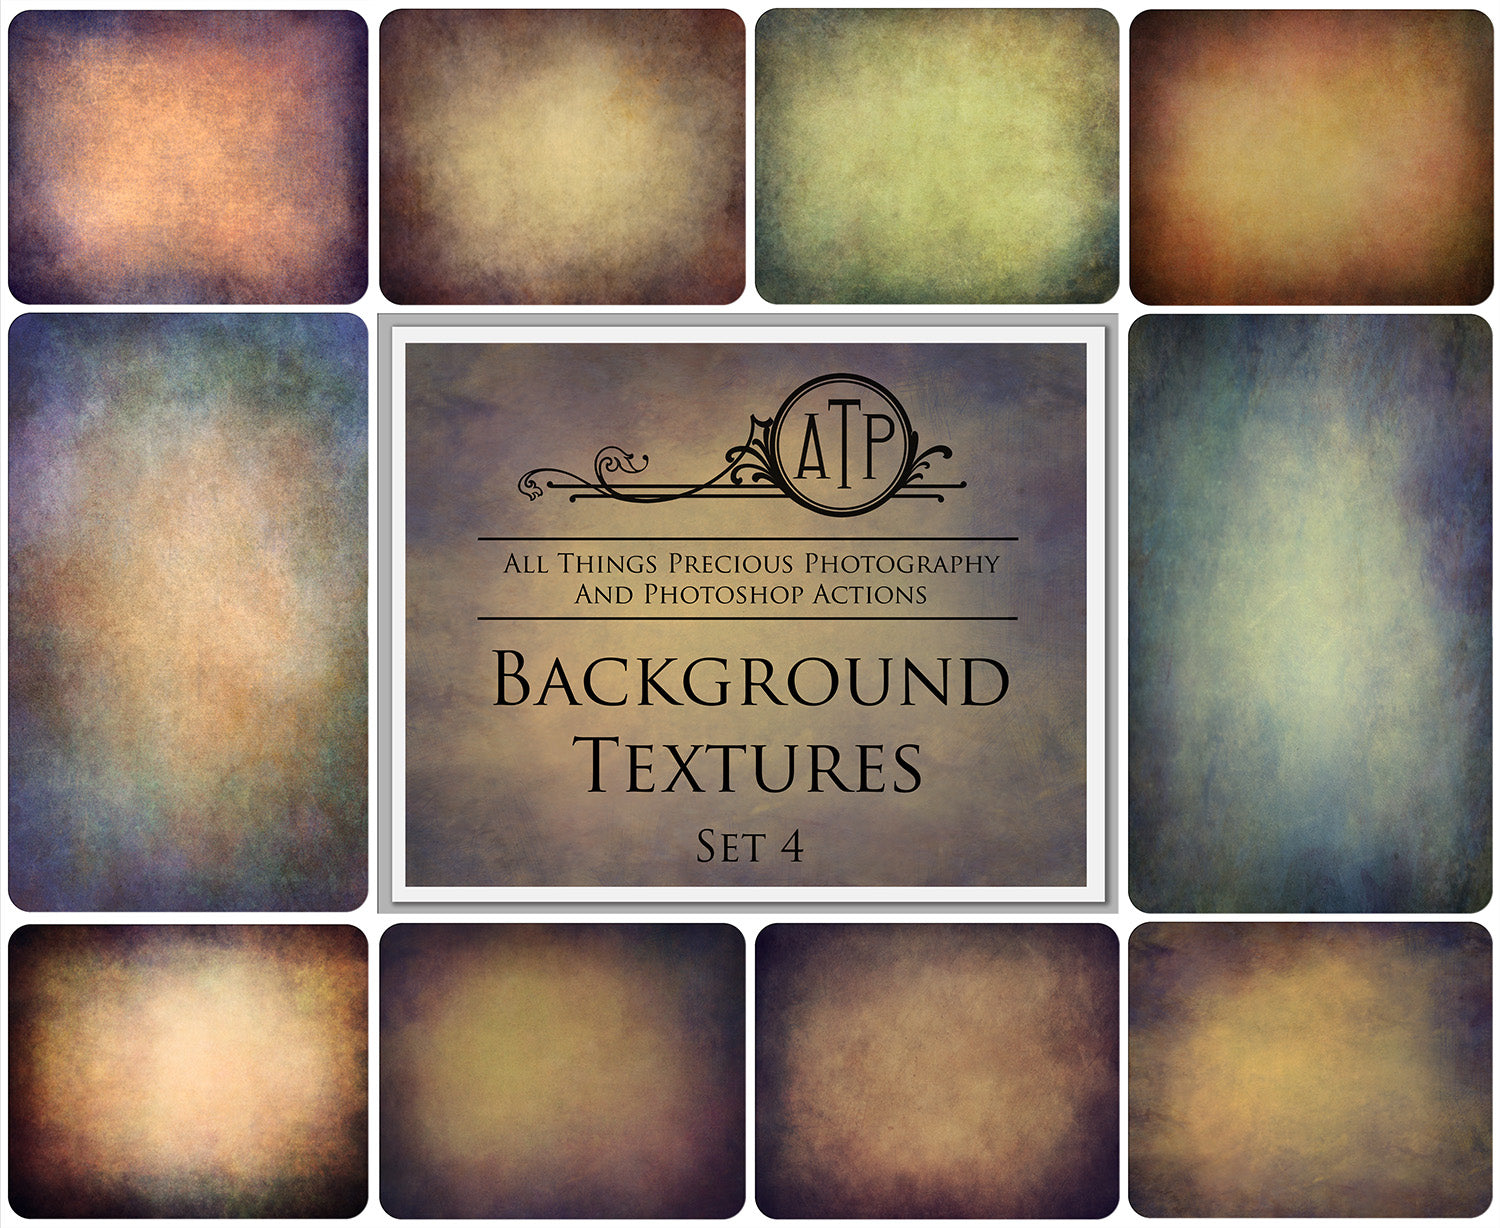 10 Fine Art TEXTURES - BACKGROUND Set 4